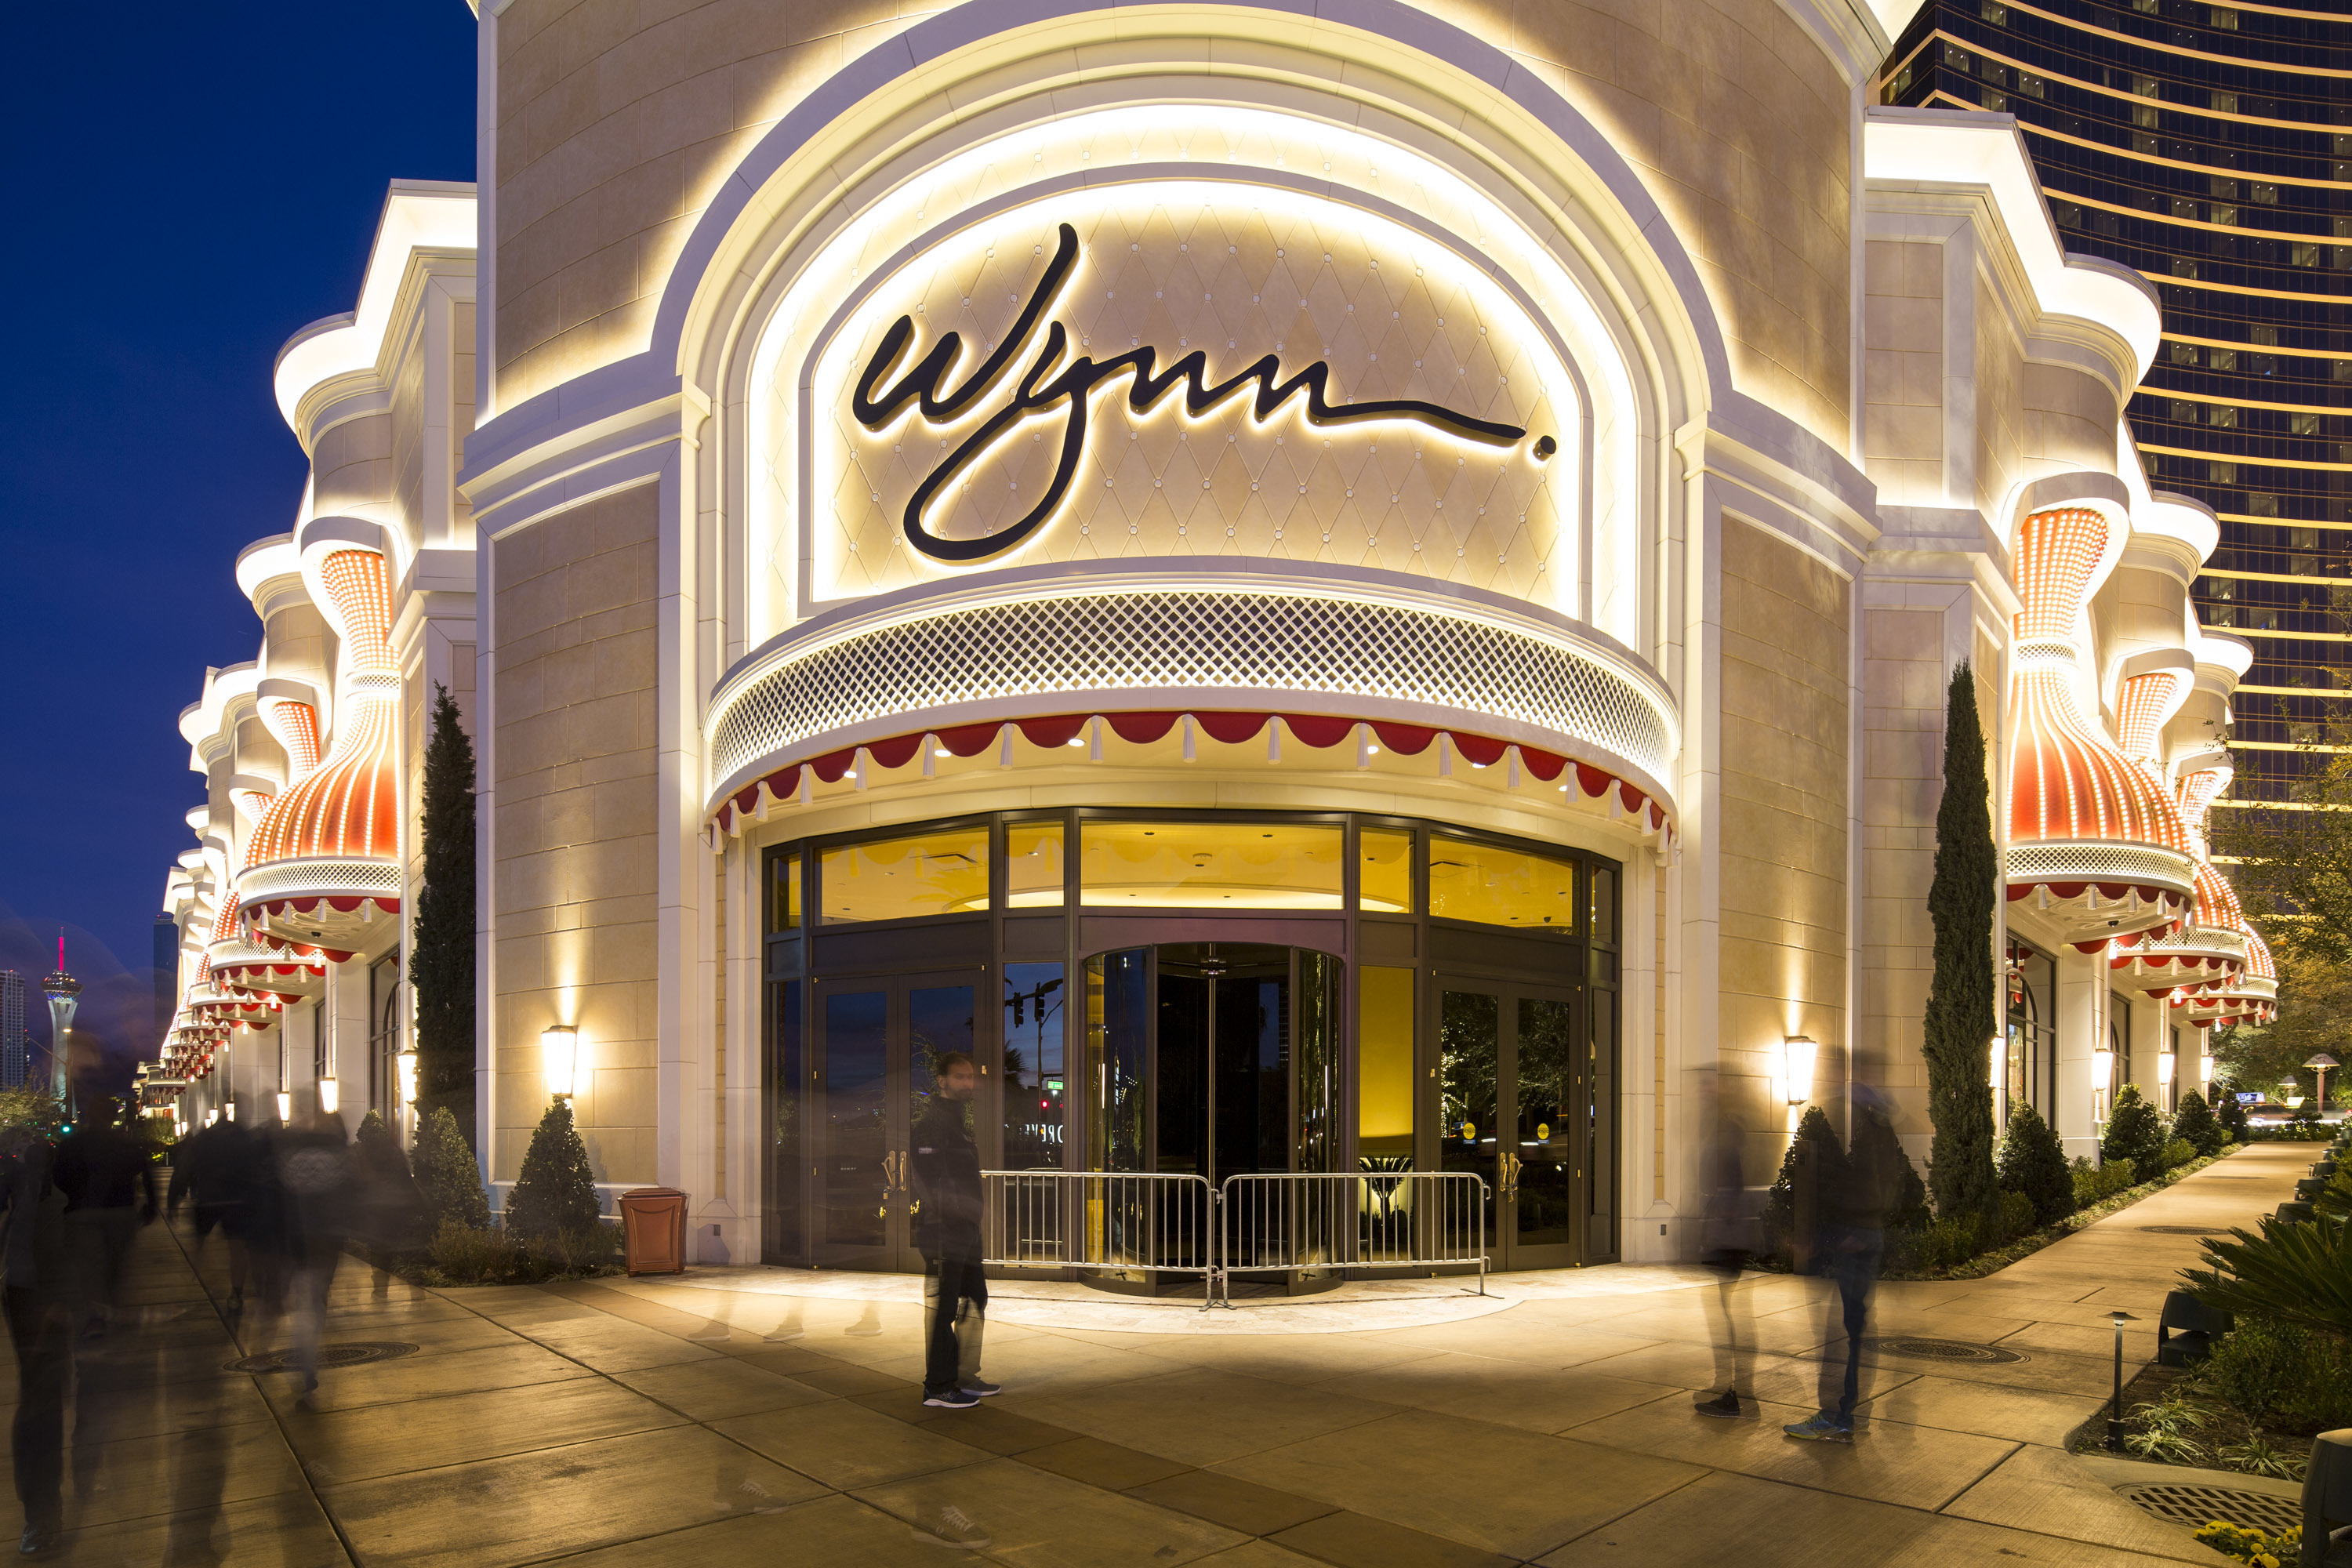 Steve Wynn Replaced as Chairman and CEO of Wynn Macau